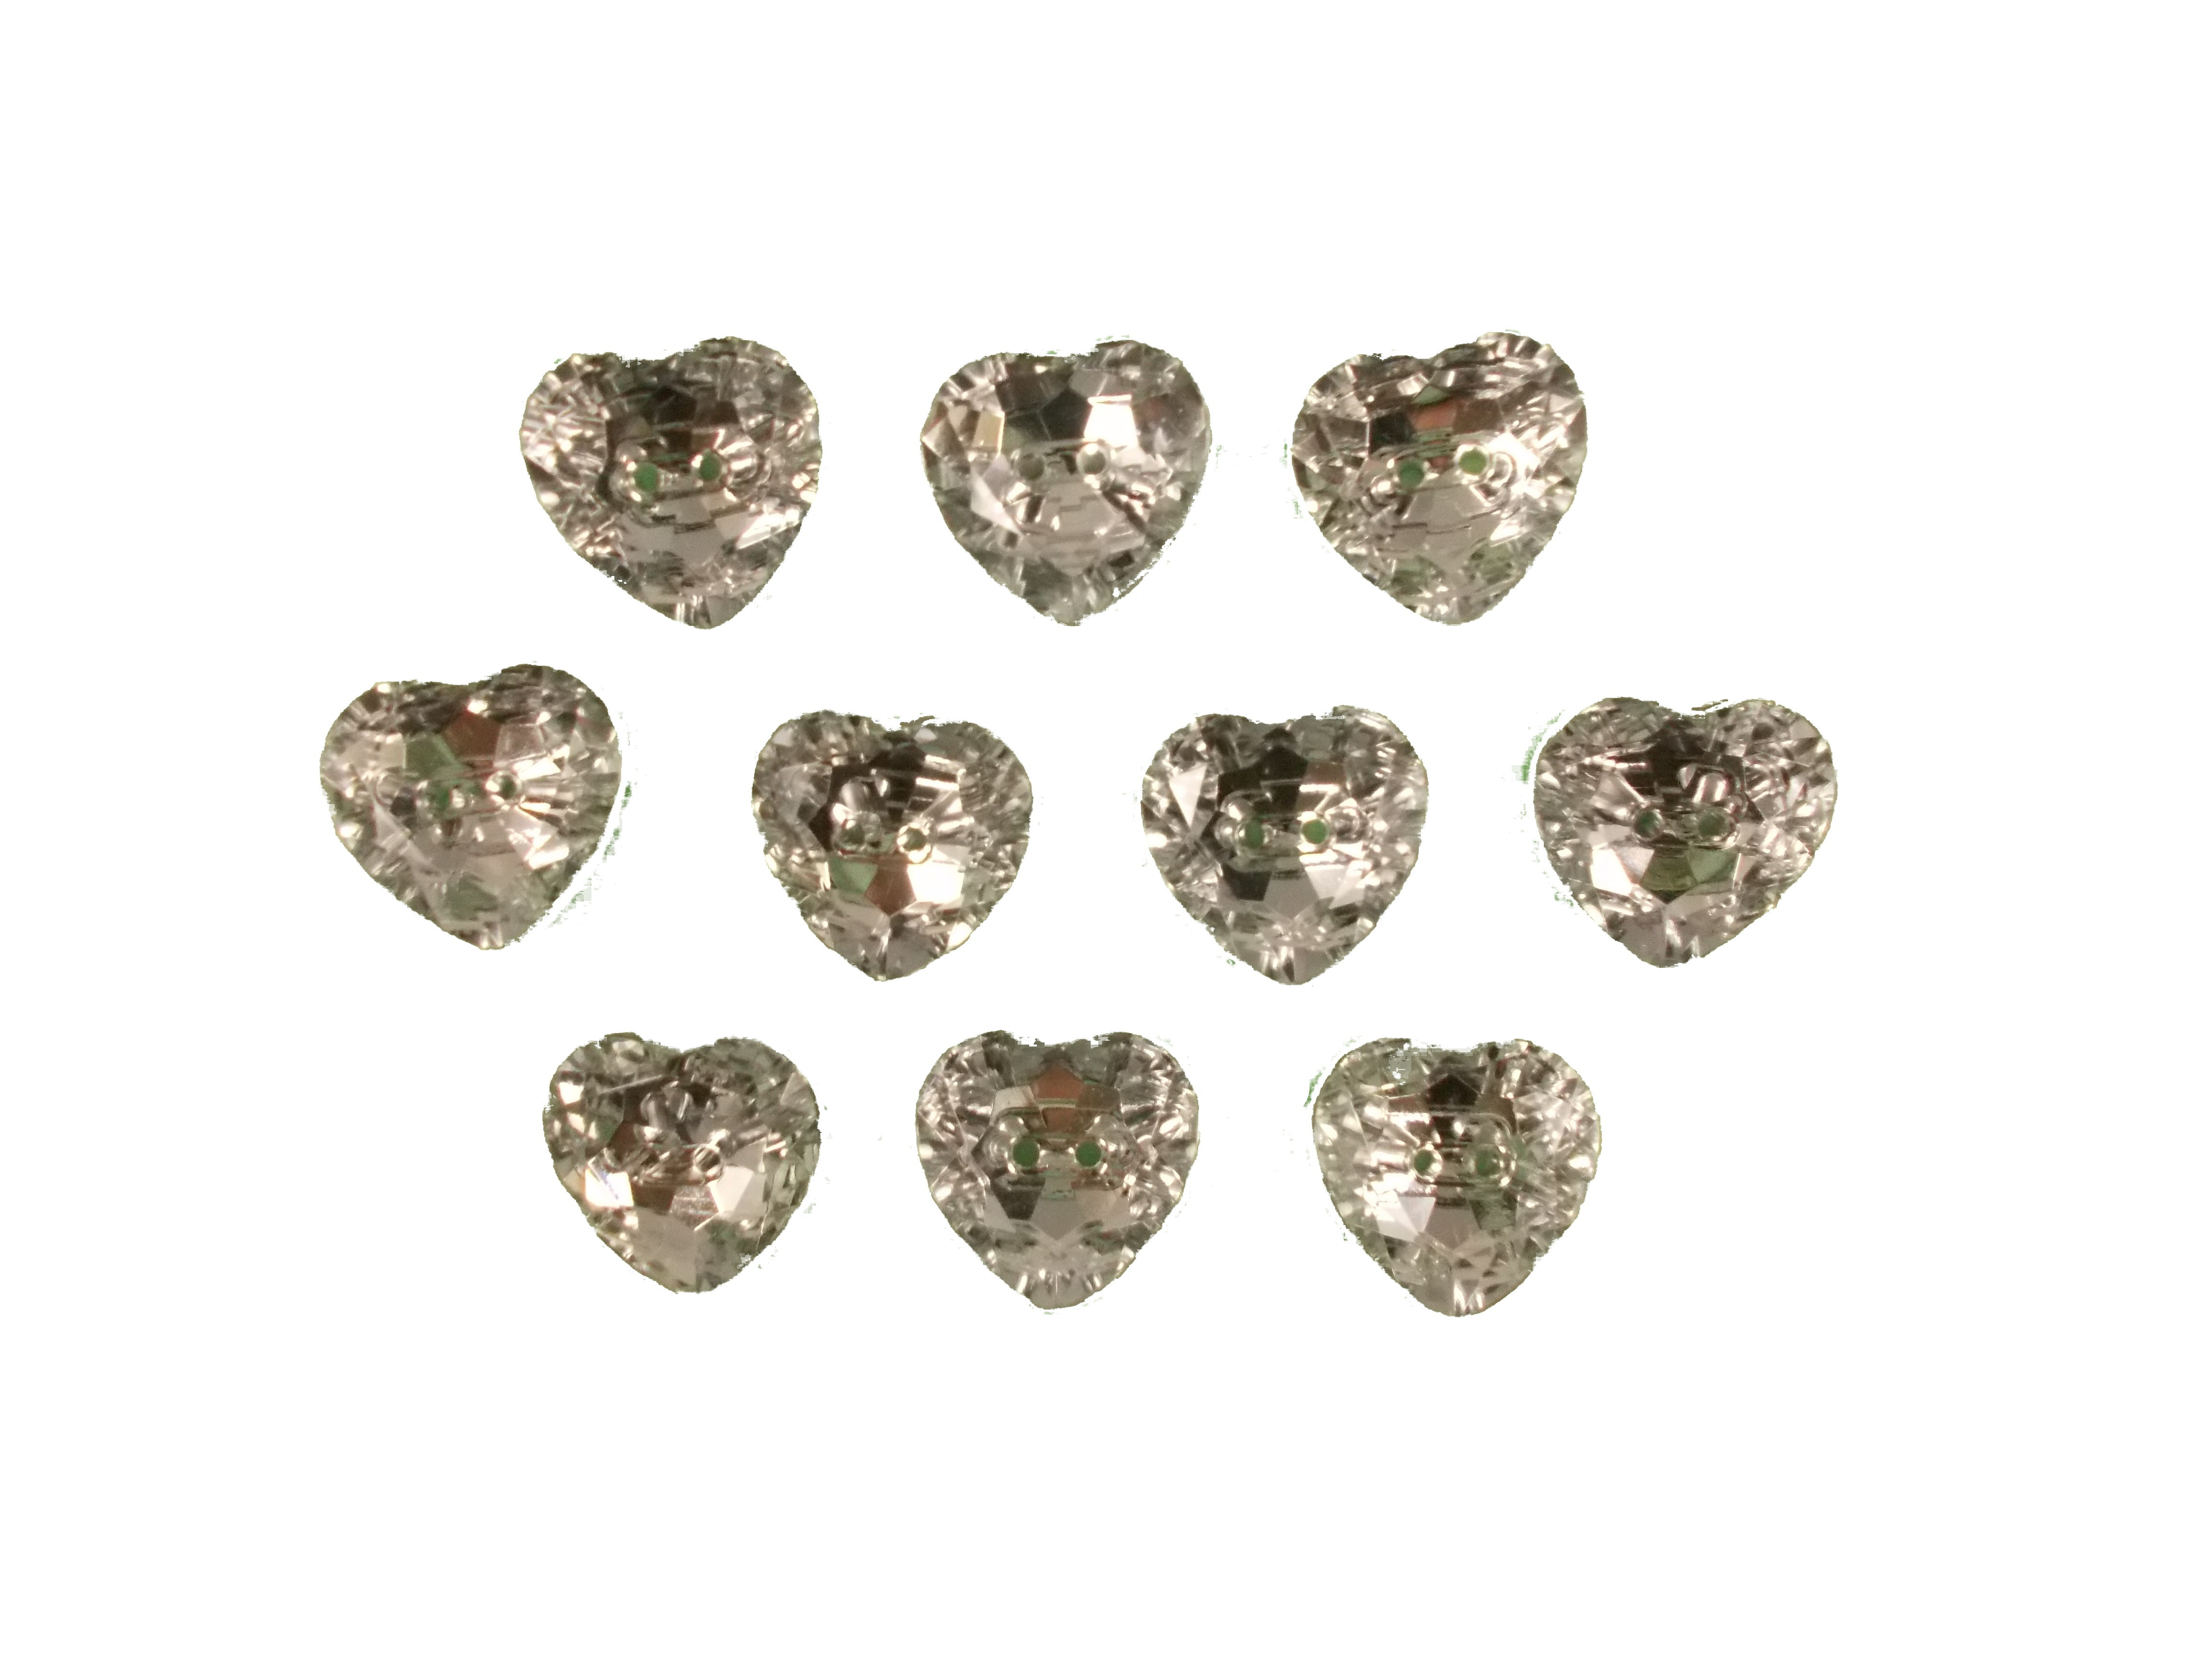 Acrylic Crystal Effect Heart Shape Buttons 16mm Clear Pack of 10